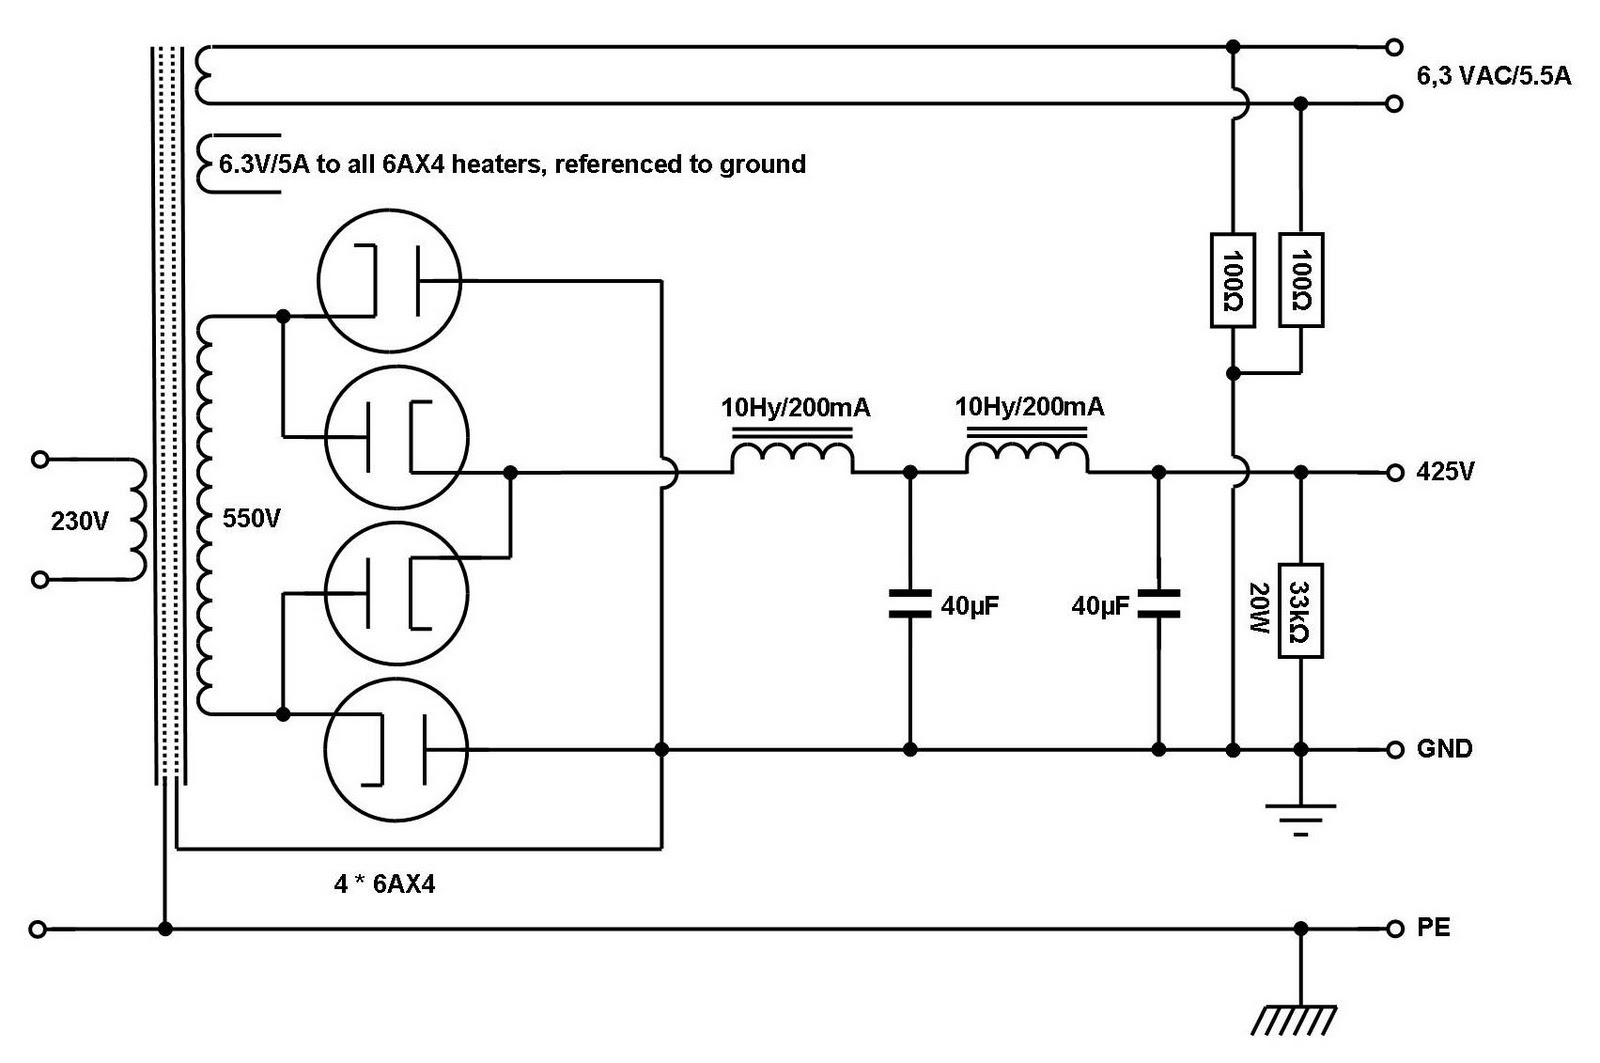 Vinylsavor February 2011 Full Wave Rectifier Connection Diagram Friday 11